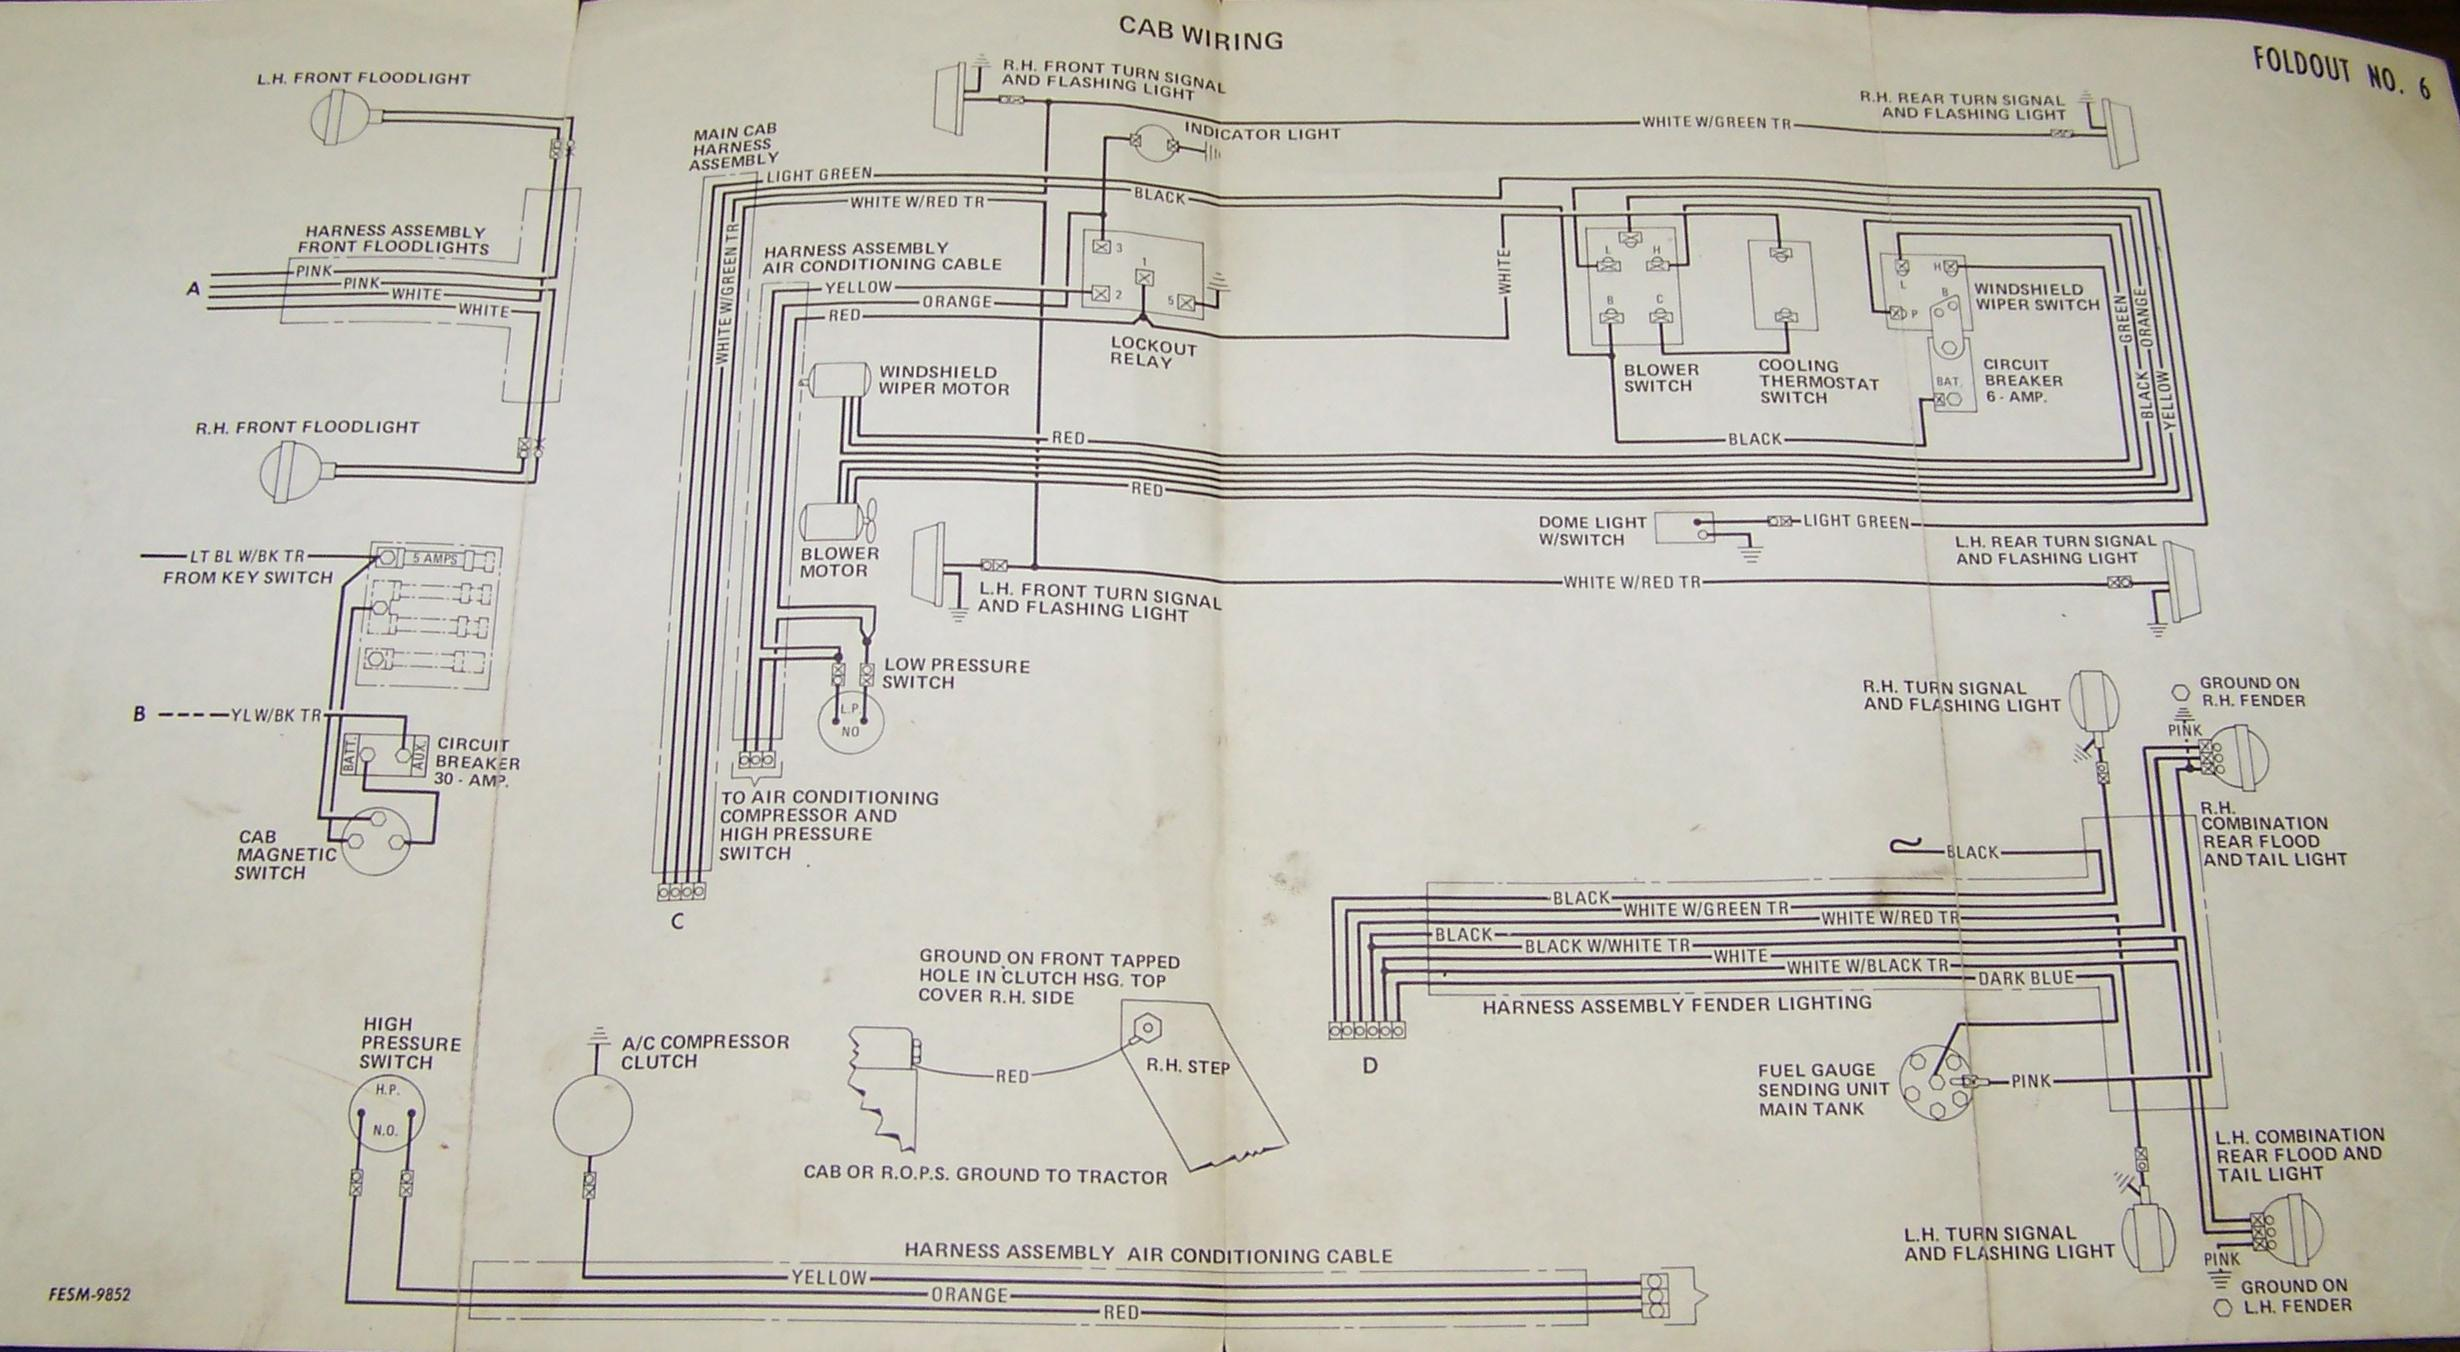 Diagram  1086 Ih Cab Wiring Diagram Full Version Hd Quality Wiring Diagram